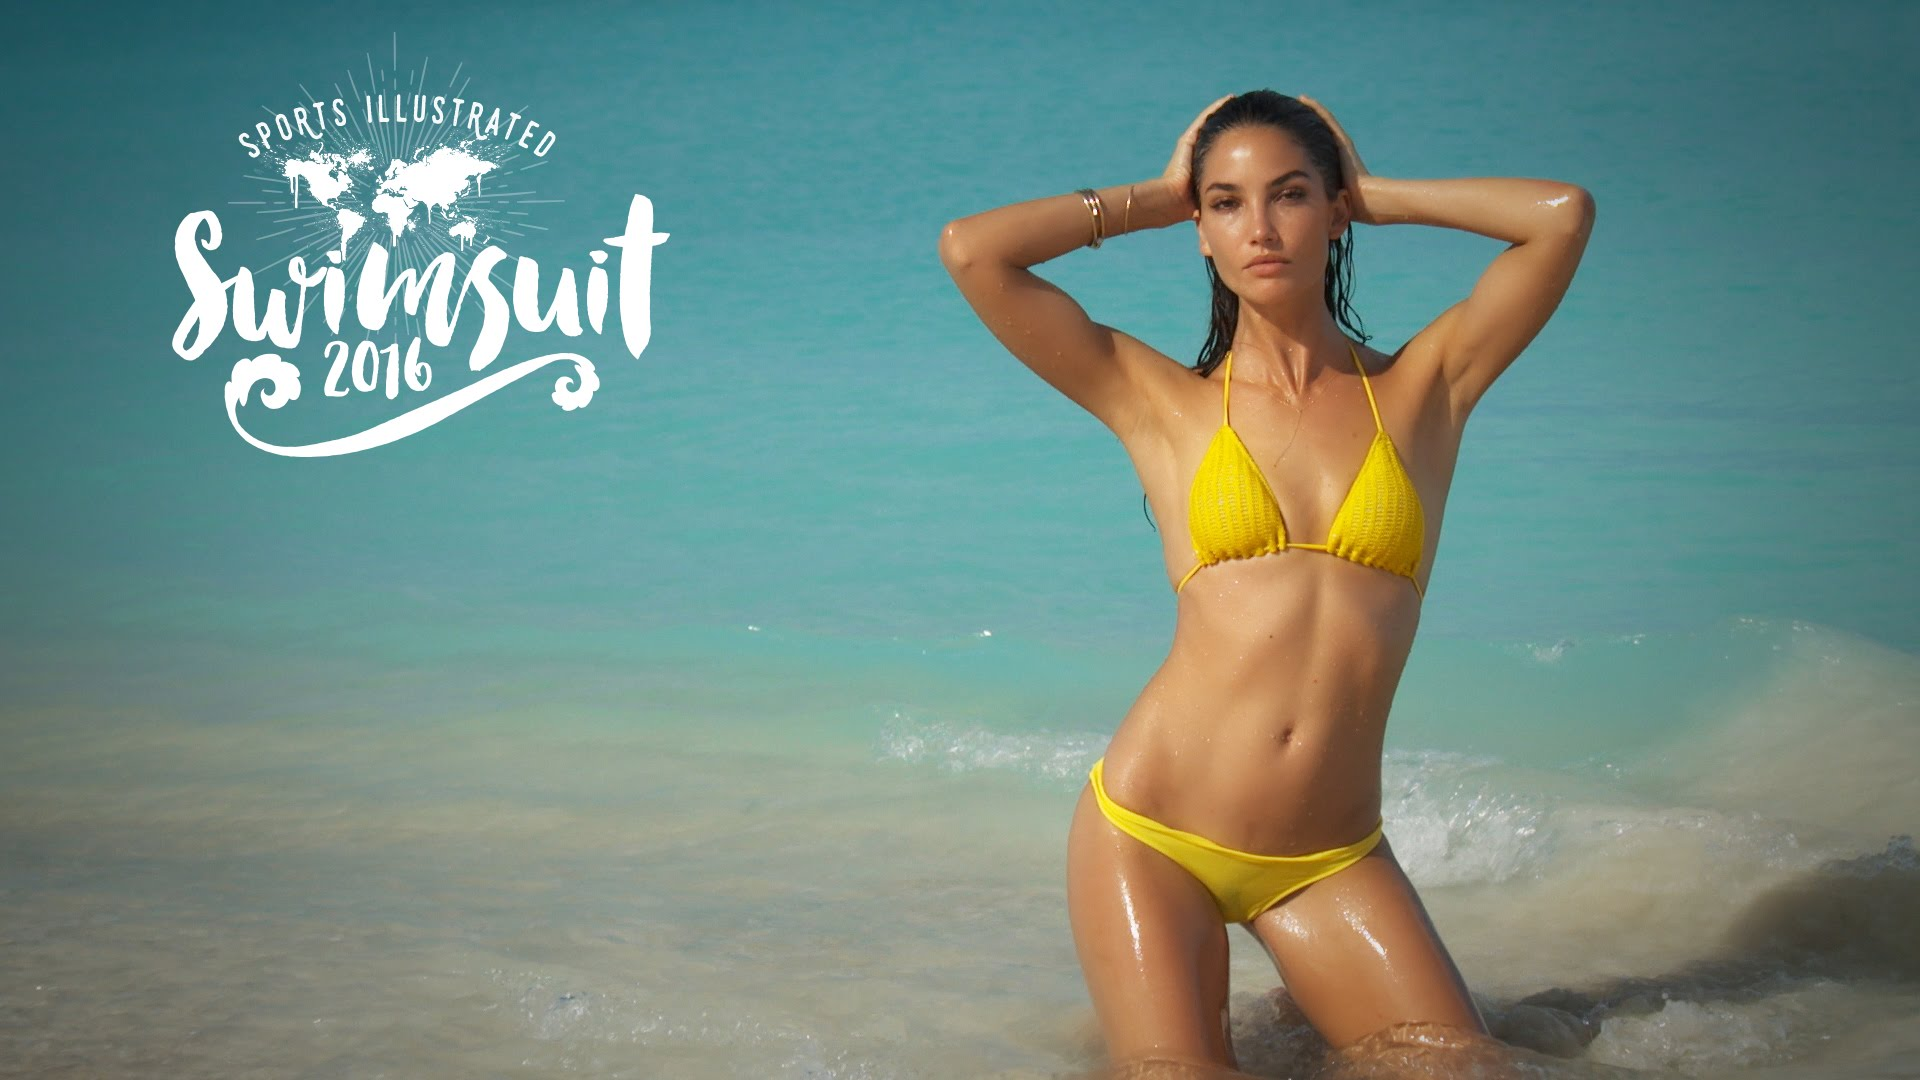 Lily Aldridge swimsuit sports illustrated cover hot bikini beach water thong sexy ass bodypaint (5)